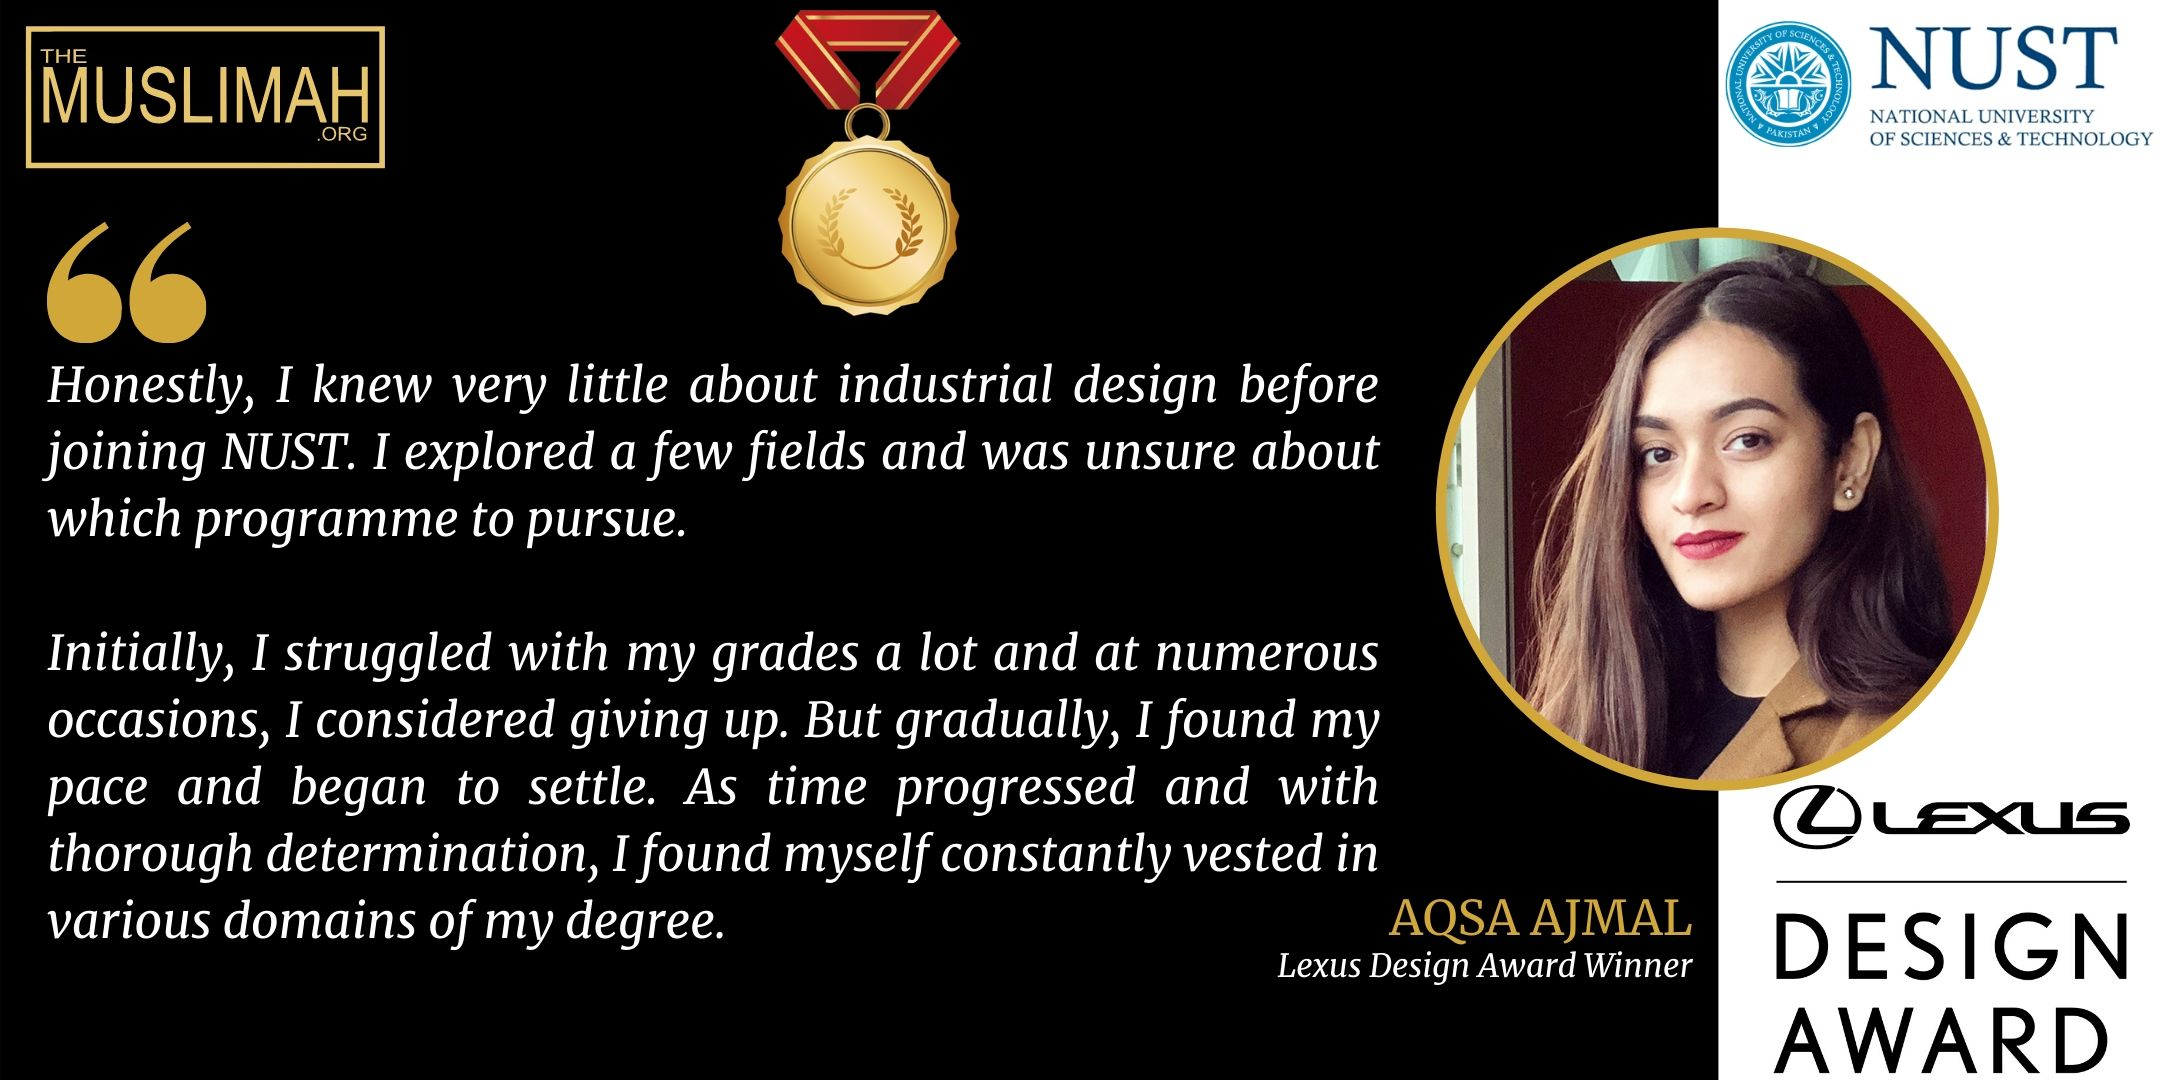 """In an interview Aqsa Ajmal provided a lowdown of her journey from uncertainty to success – which was certainly not earned overnight. """"Honestly, I knew very little about industrial design before joining NUST. I explored a few fields and was unsure about which programme to pursue,"""" she confessed. """"Initially, I struggled with my grades a lot and at numerous occasions, I considered giving up. But gradually, I found my pace and began to settle. As time progressed and with thorough determination, I found myself constantly vested in various domains of my degree."""""""